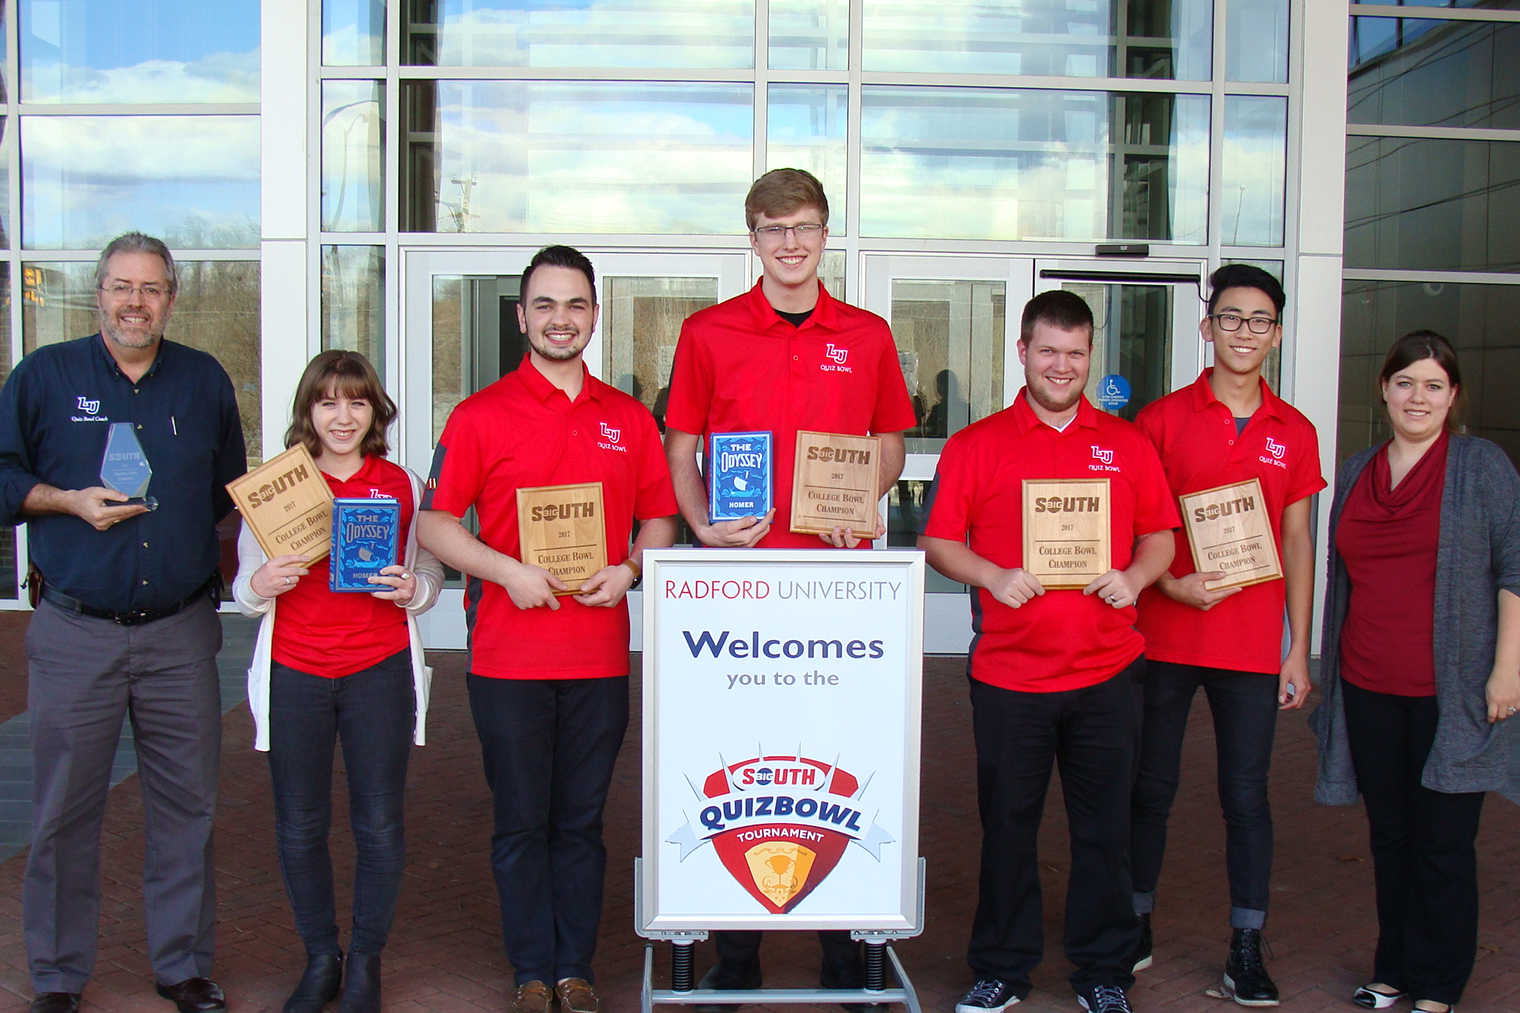 Liberty University's Big South Conference champion Quiz Bowl team (from left): Head Coach Dr. Jim Nutter, Leah DePiero, Mark Whitten (captain), Kristian Myrdal, Nathan Cook, Micah Protzman, and Assistant Coach Whitney Logan.